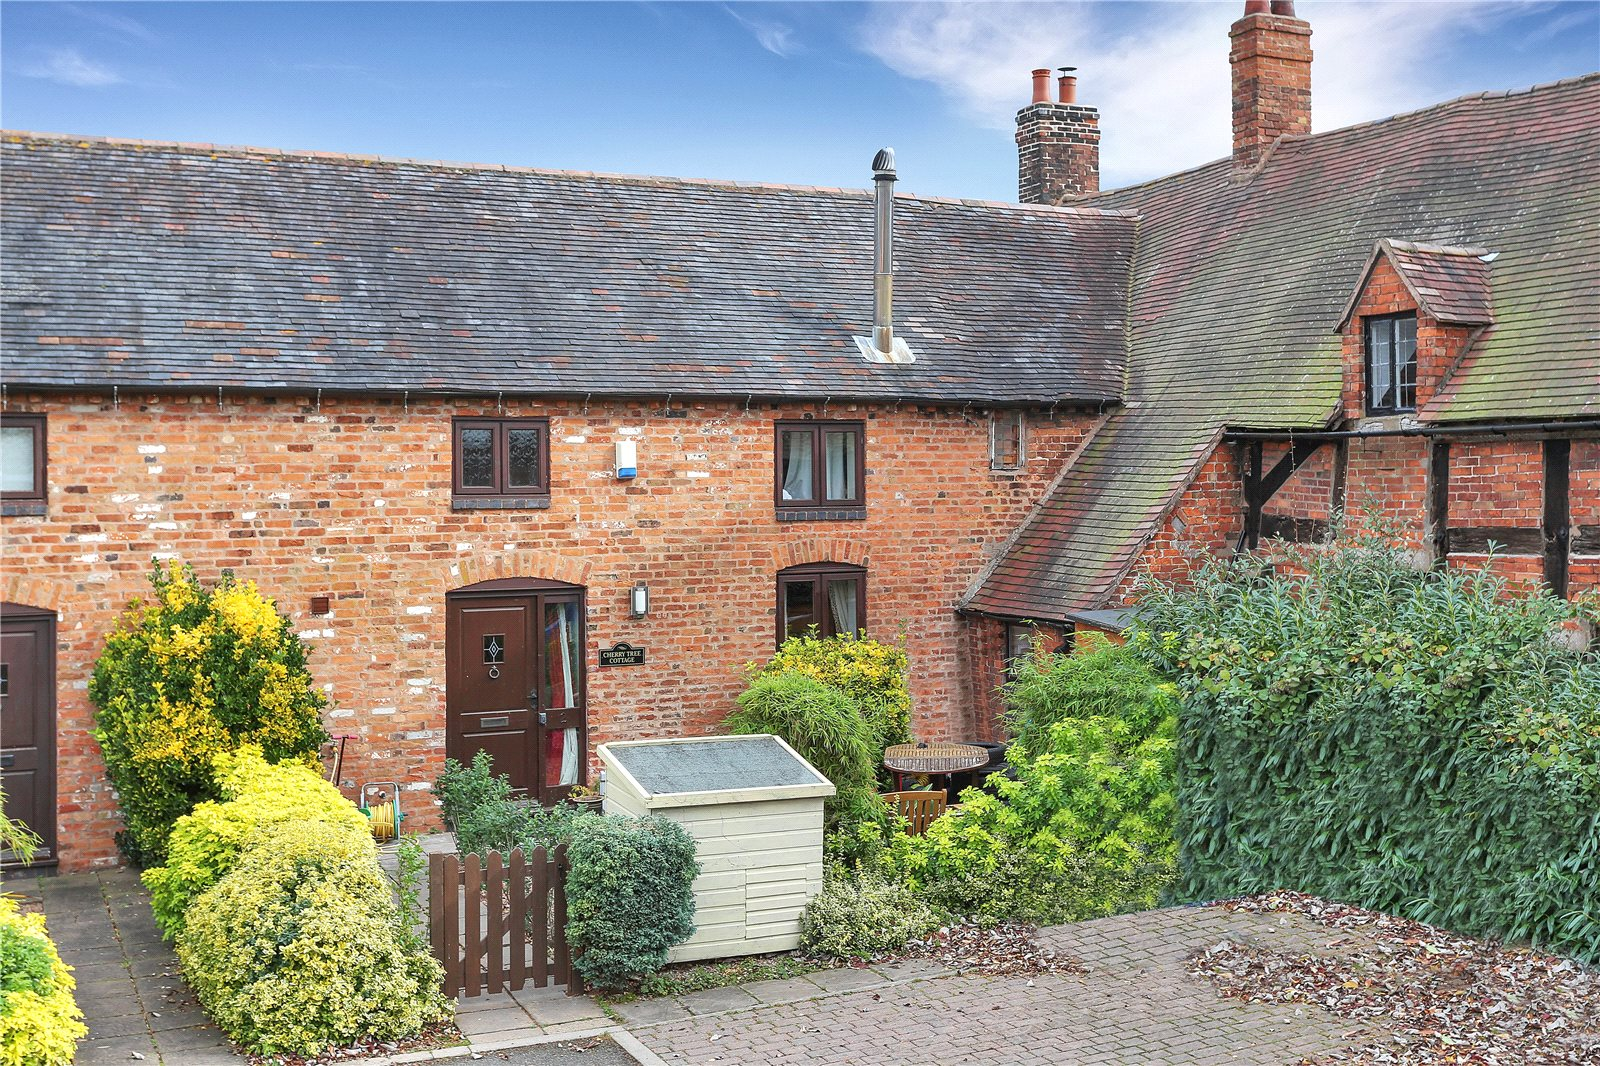 Cherry Tree Cottage, 2 Beighterton Farm Barns, Weston-under-Lizard, Shifnal, Staffordshire, TF11